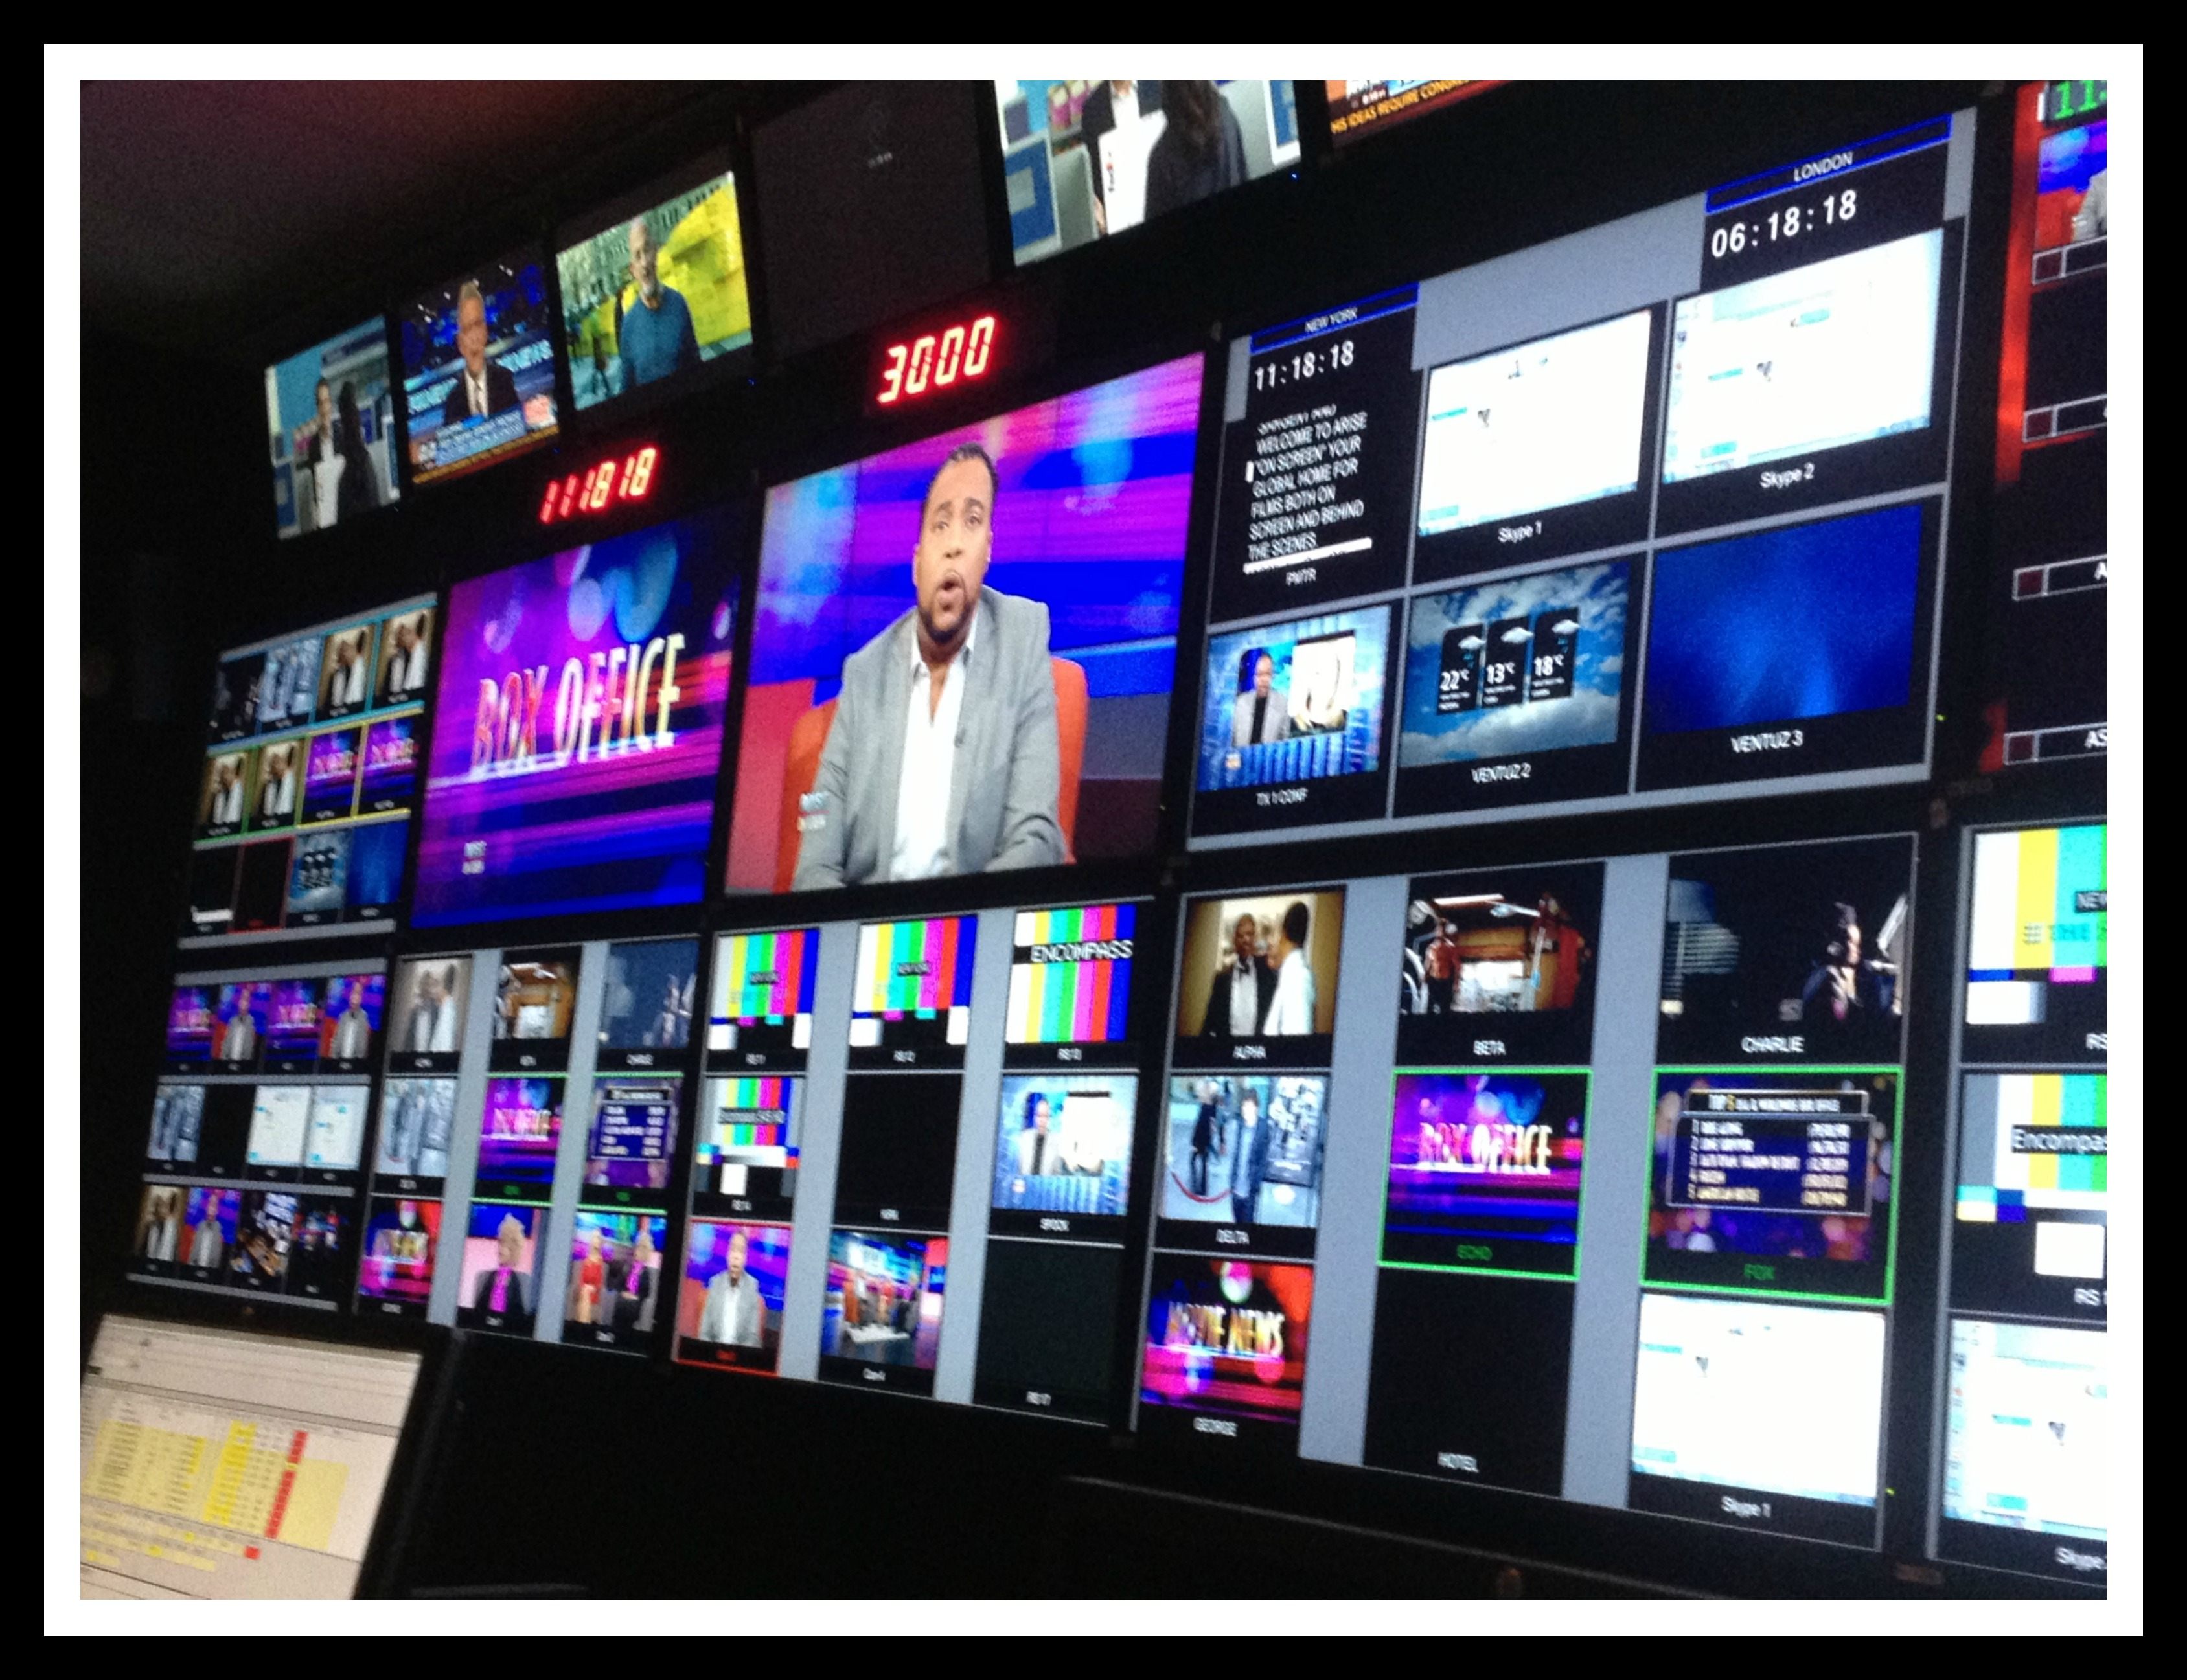 Youtube Live Control Room